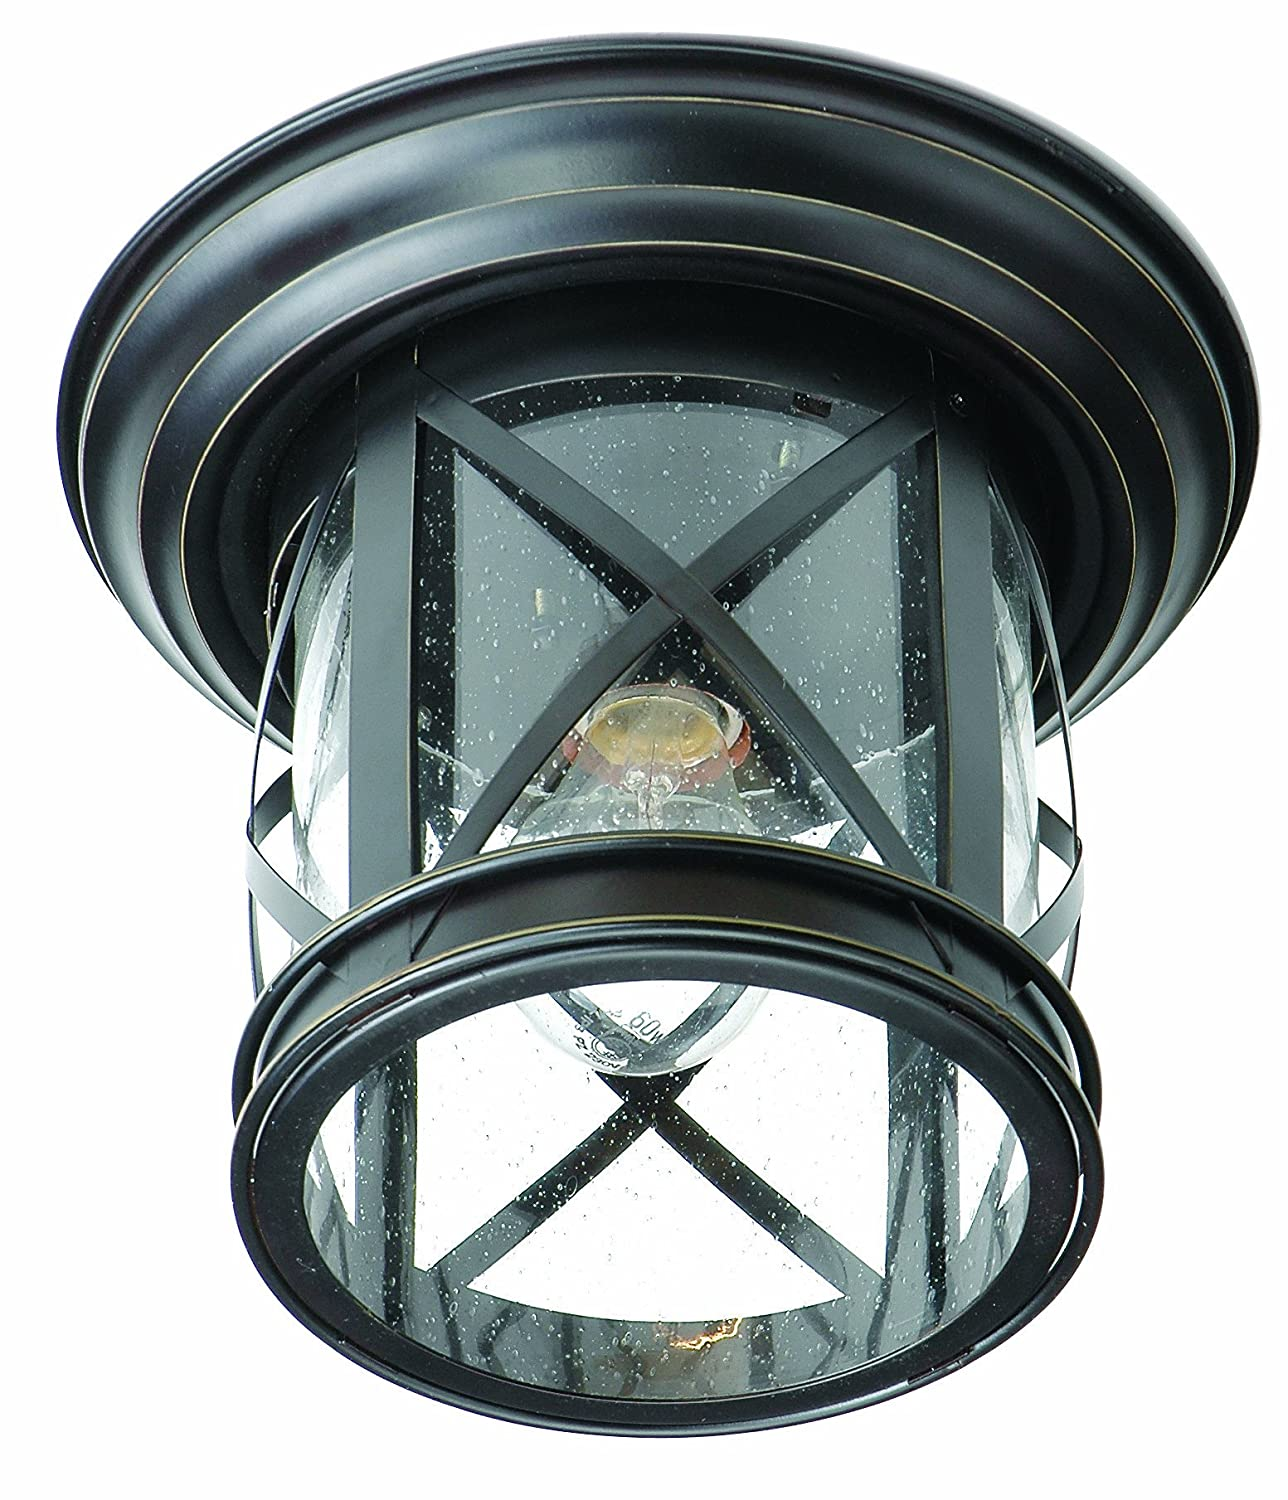 Trans globe lighting 5128 rob outdoor chandler 95 flushmount trans globe lighting 5128 rob outdoor chandler 95 flushmount lantern rubbed oil bronze flush mount ceiling light fixtures amazon arubaitofo Choice Image